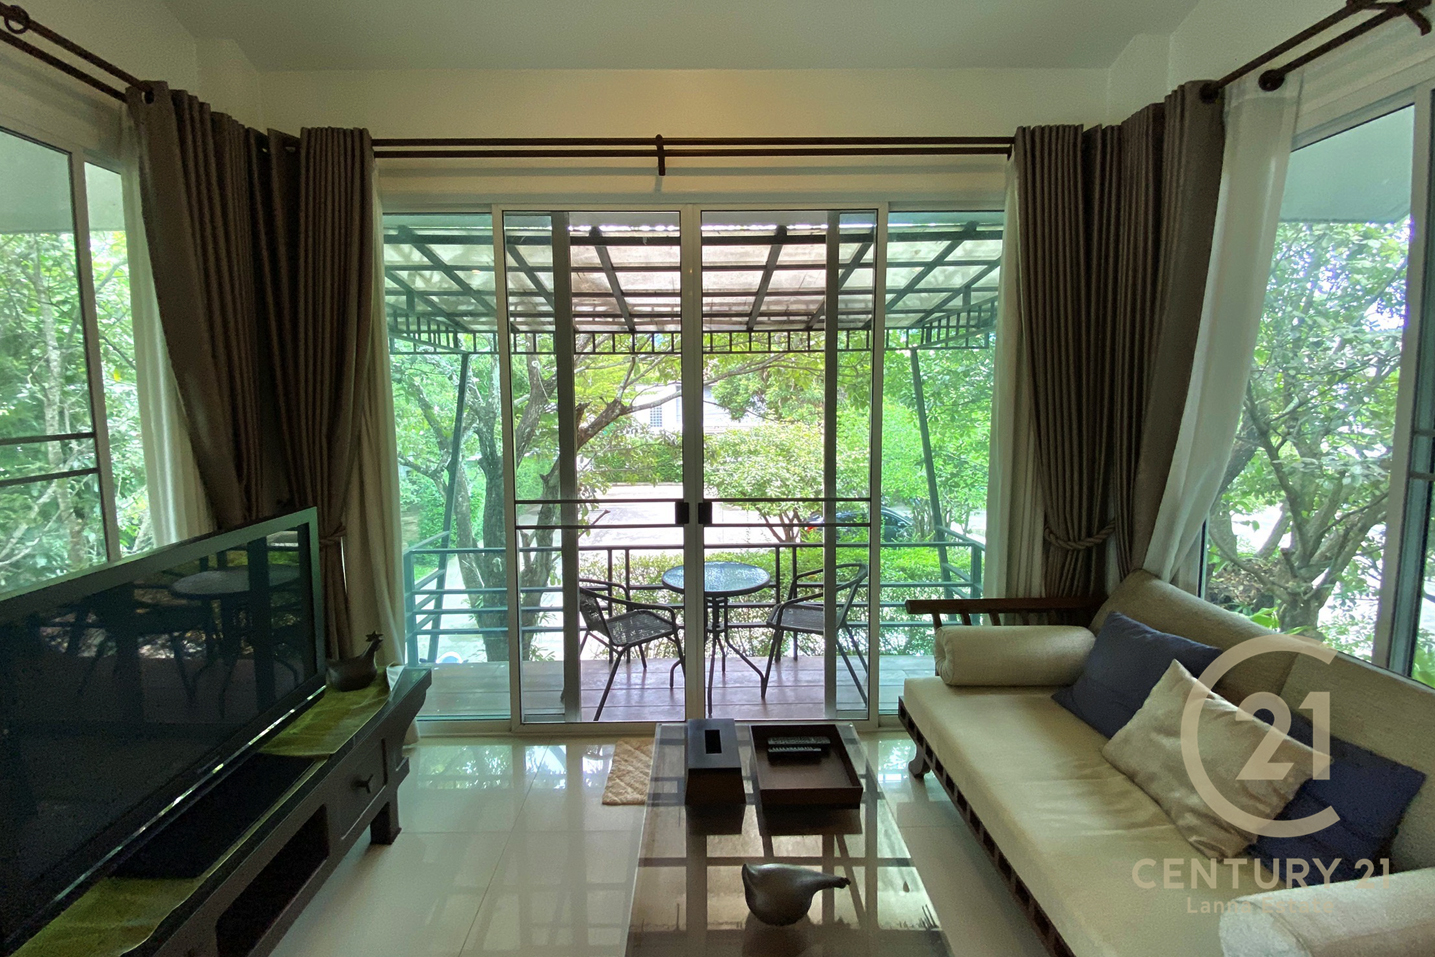 1 Bedroom Condo for Rent or Sale at Na TaRa Exclusive Residences located at Su Thep, Chiang Mai.